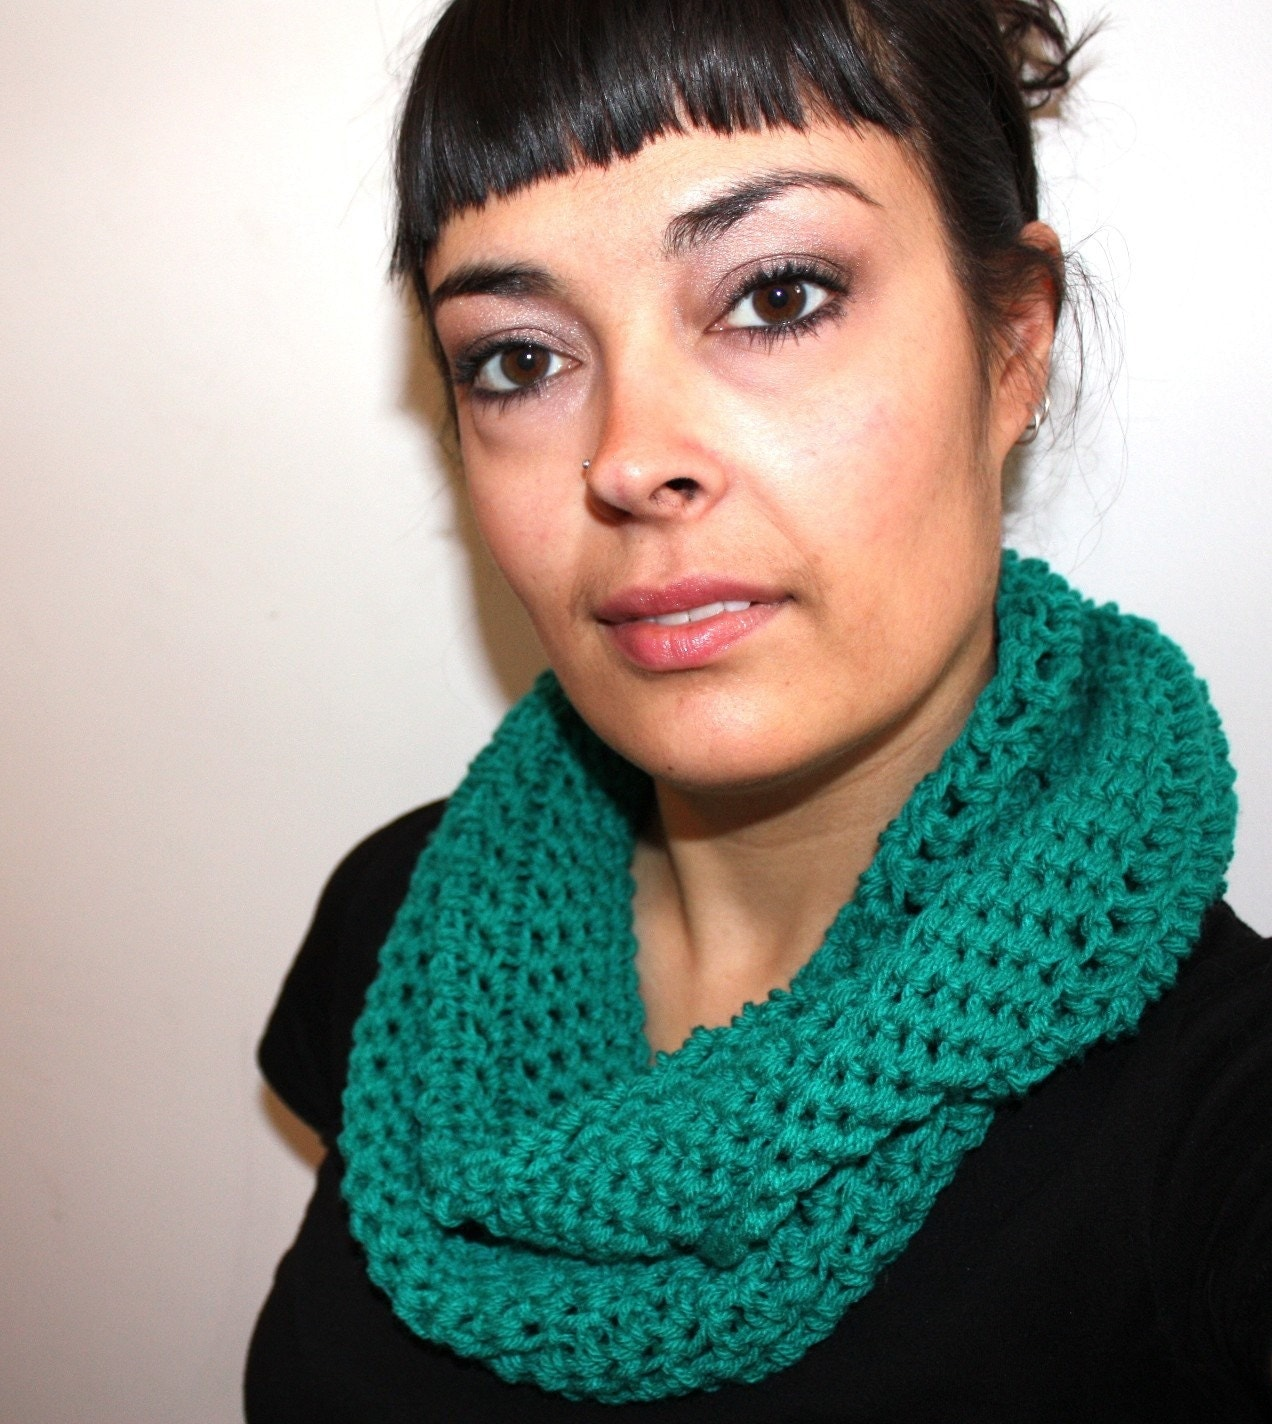 Crochet Spot » Blog Archive » Crochet Pattern: Royal Scarf